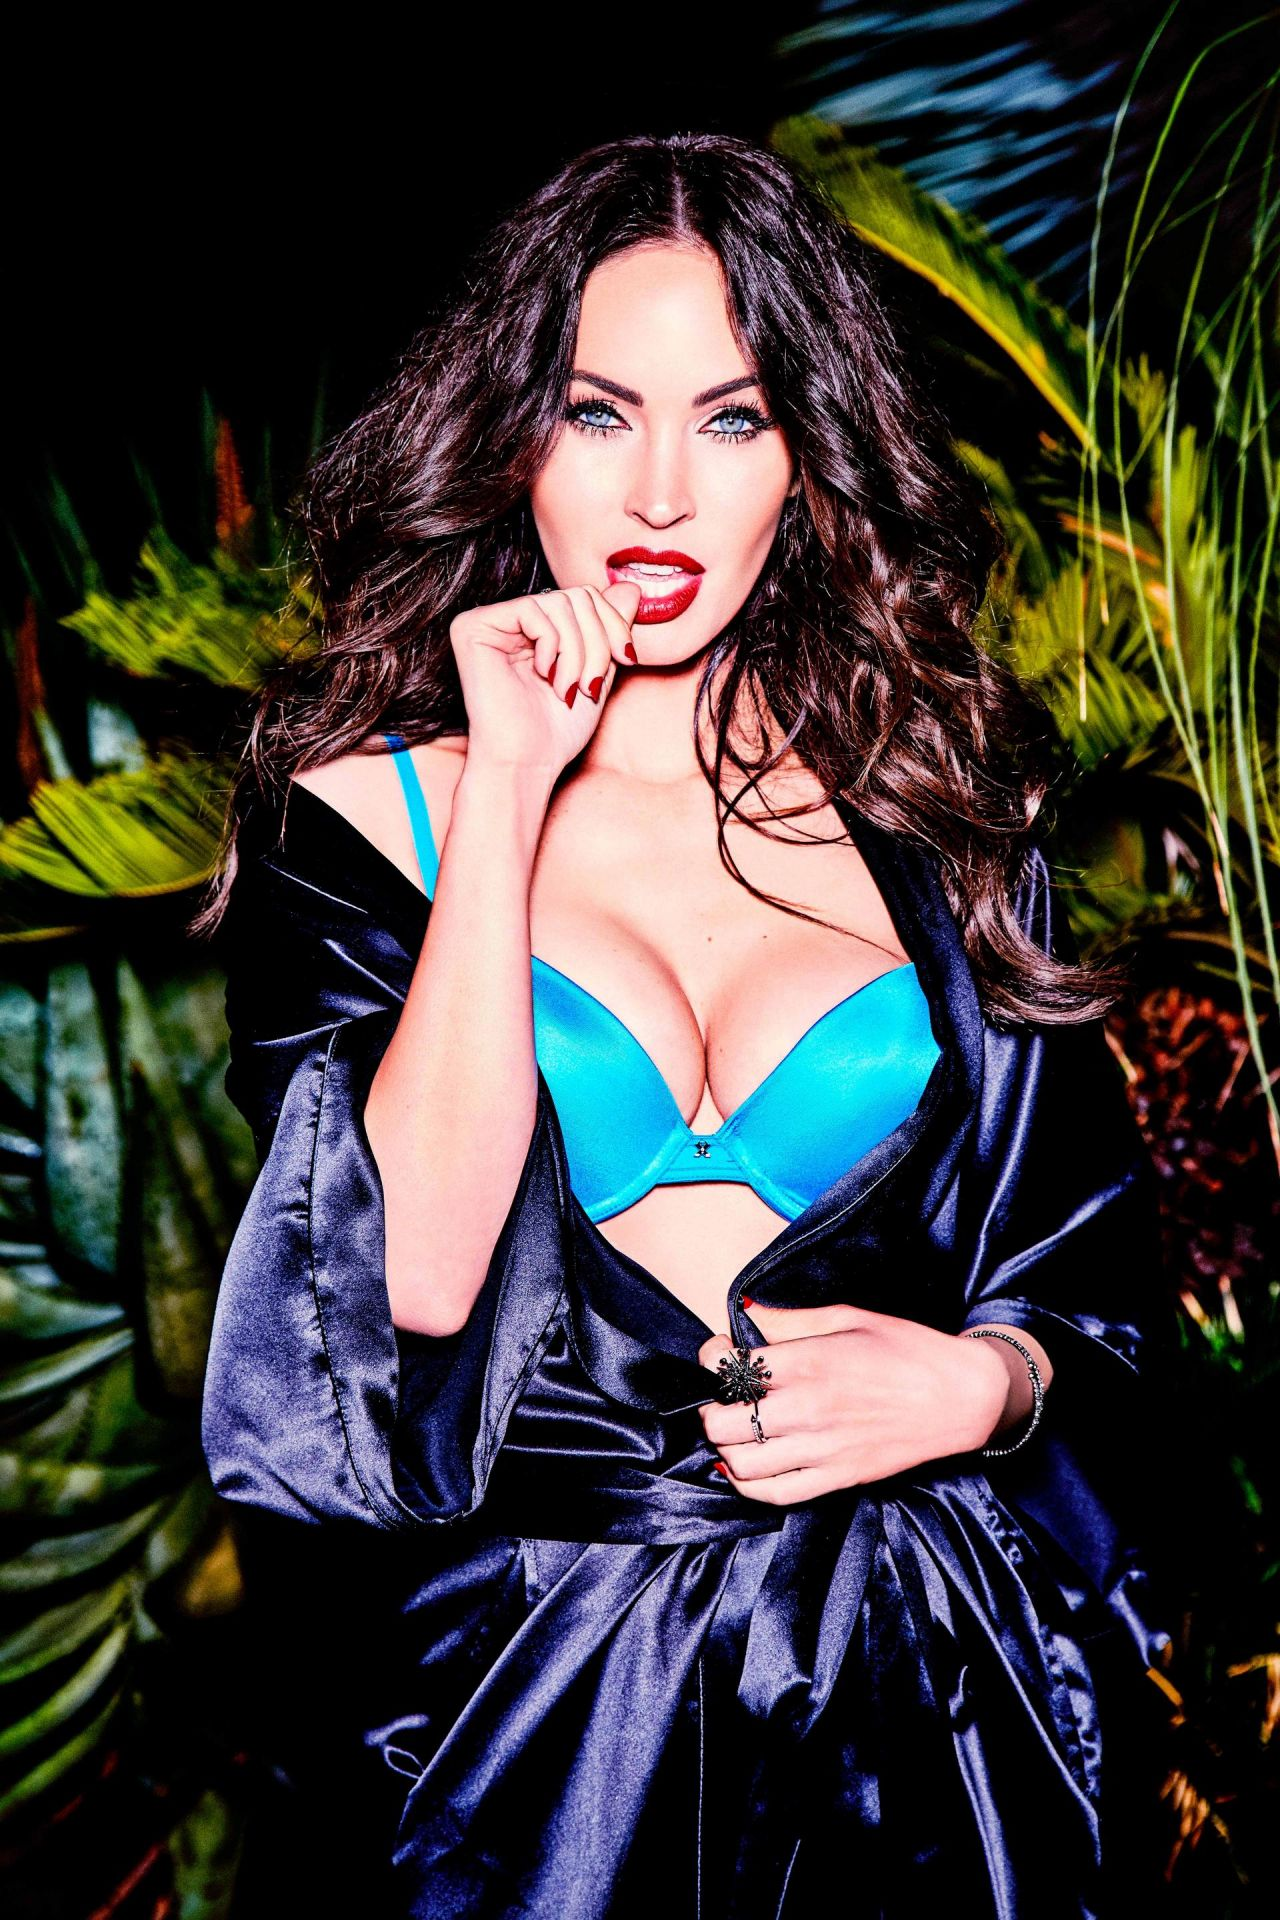 Megan Fox - 'V' Magazi... Megan Fox